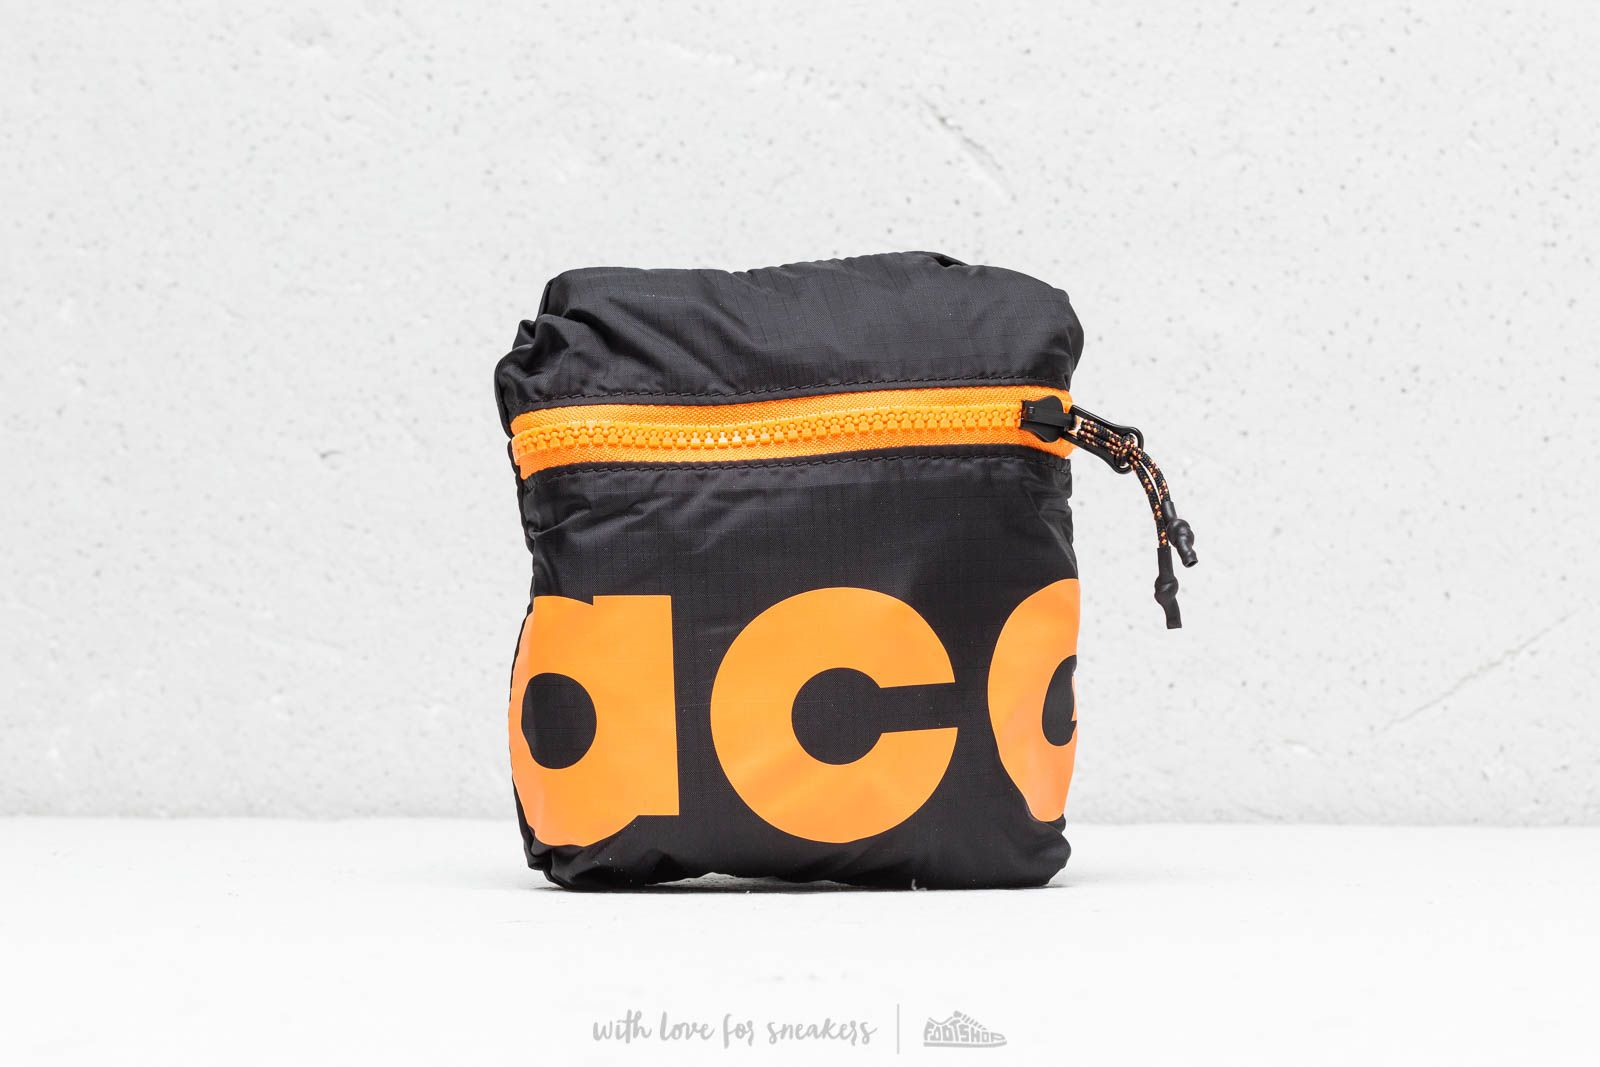 133c925a0575 Nike ACG Packable Duffle Bag Purple  Black at a great price  37 buy at  Footshop